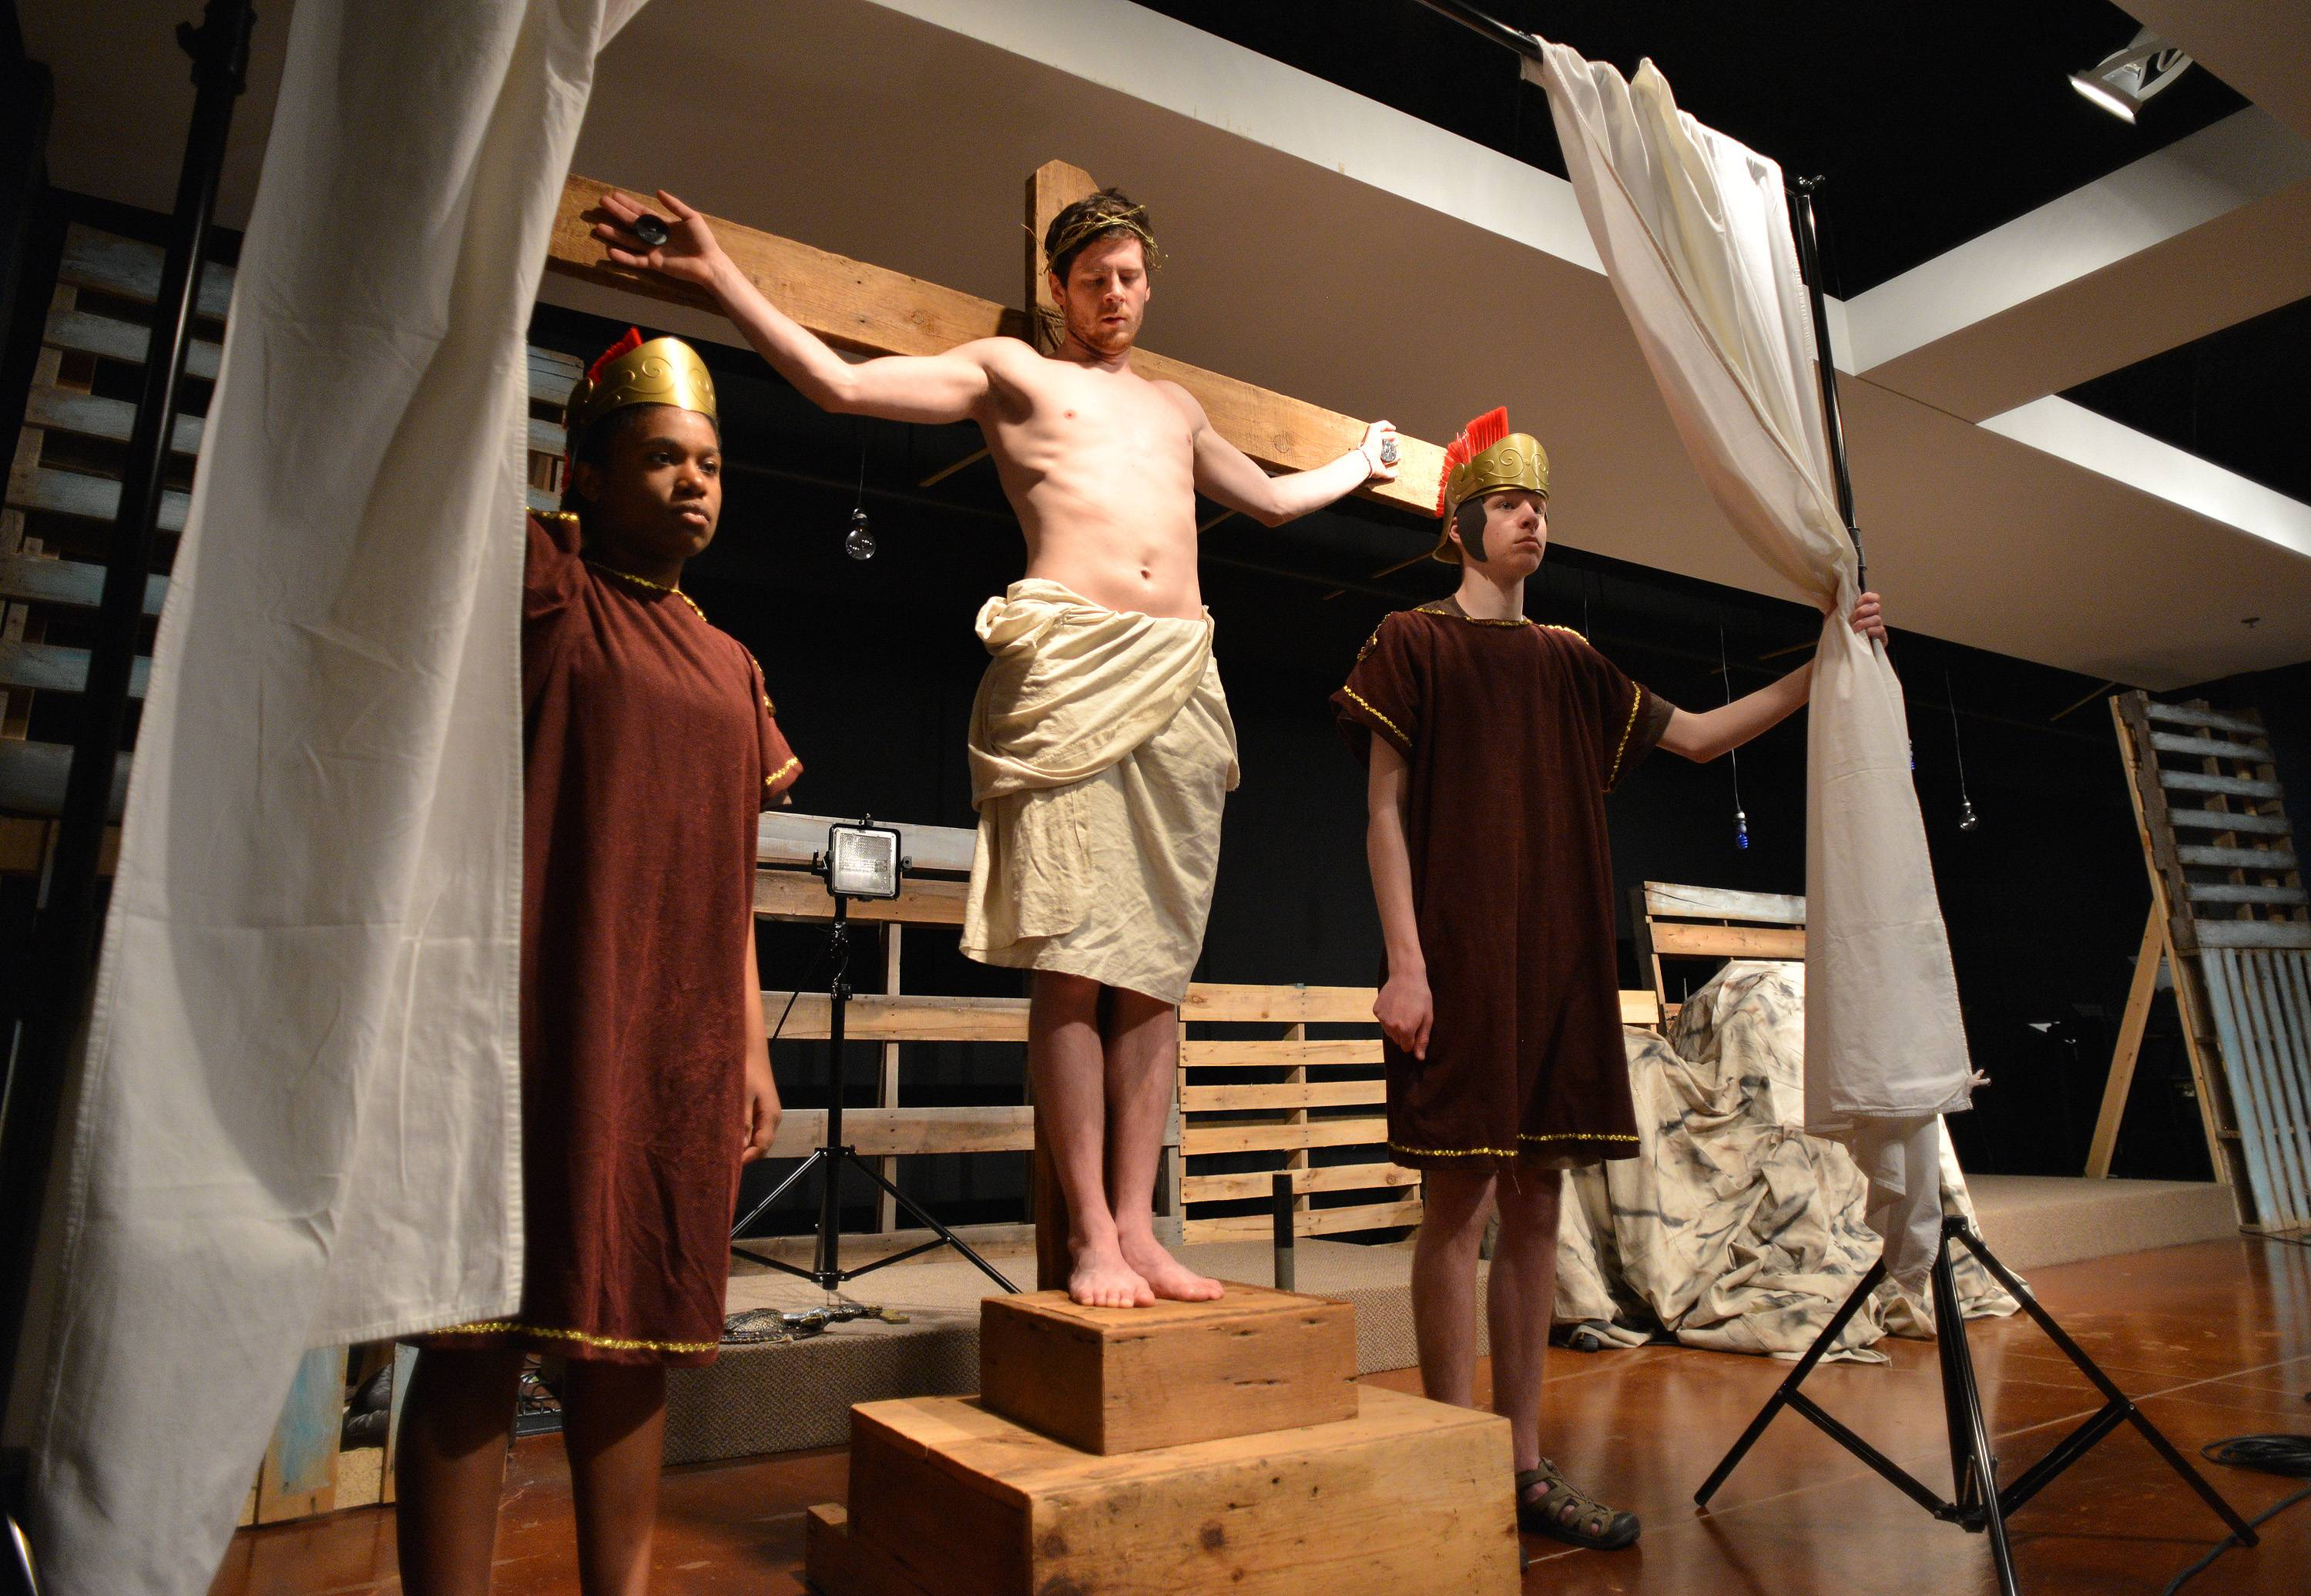 The last scene in Alleluia Lutheran Church's Passion Week Experience is Jesus on the cross, guarded by Roman soldiers portrayed by Taya Finch, left, and Nick Duesing. Jesus is portrayed by Conor Hughes.